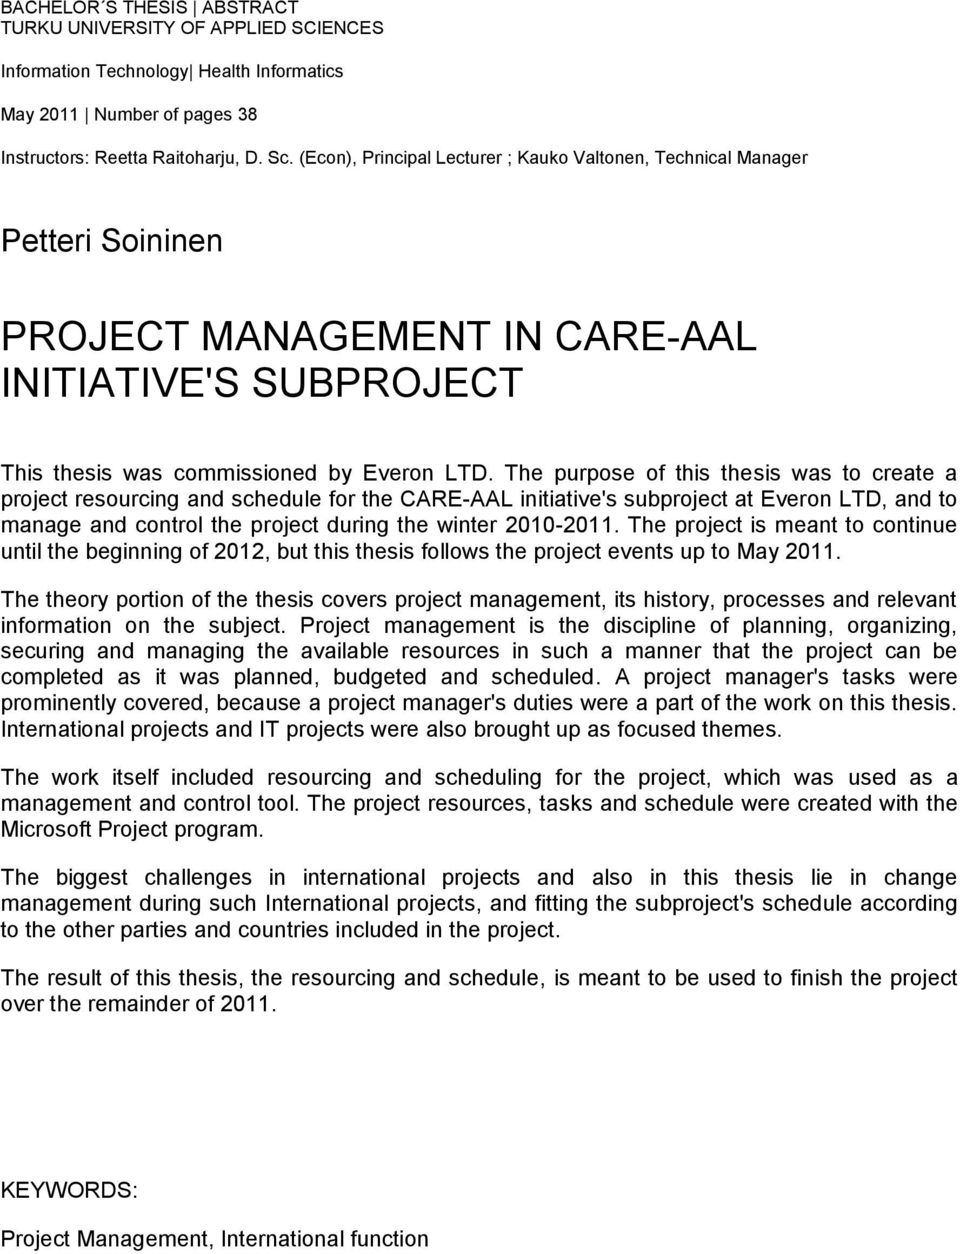 The purpose of this thesis was to create a project resourcing and schedule for the CARE-AAL initiative's subproject at Everon LTD, and to manage and control the project during the winter 2010-2011.